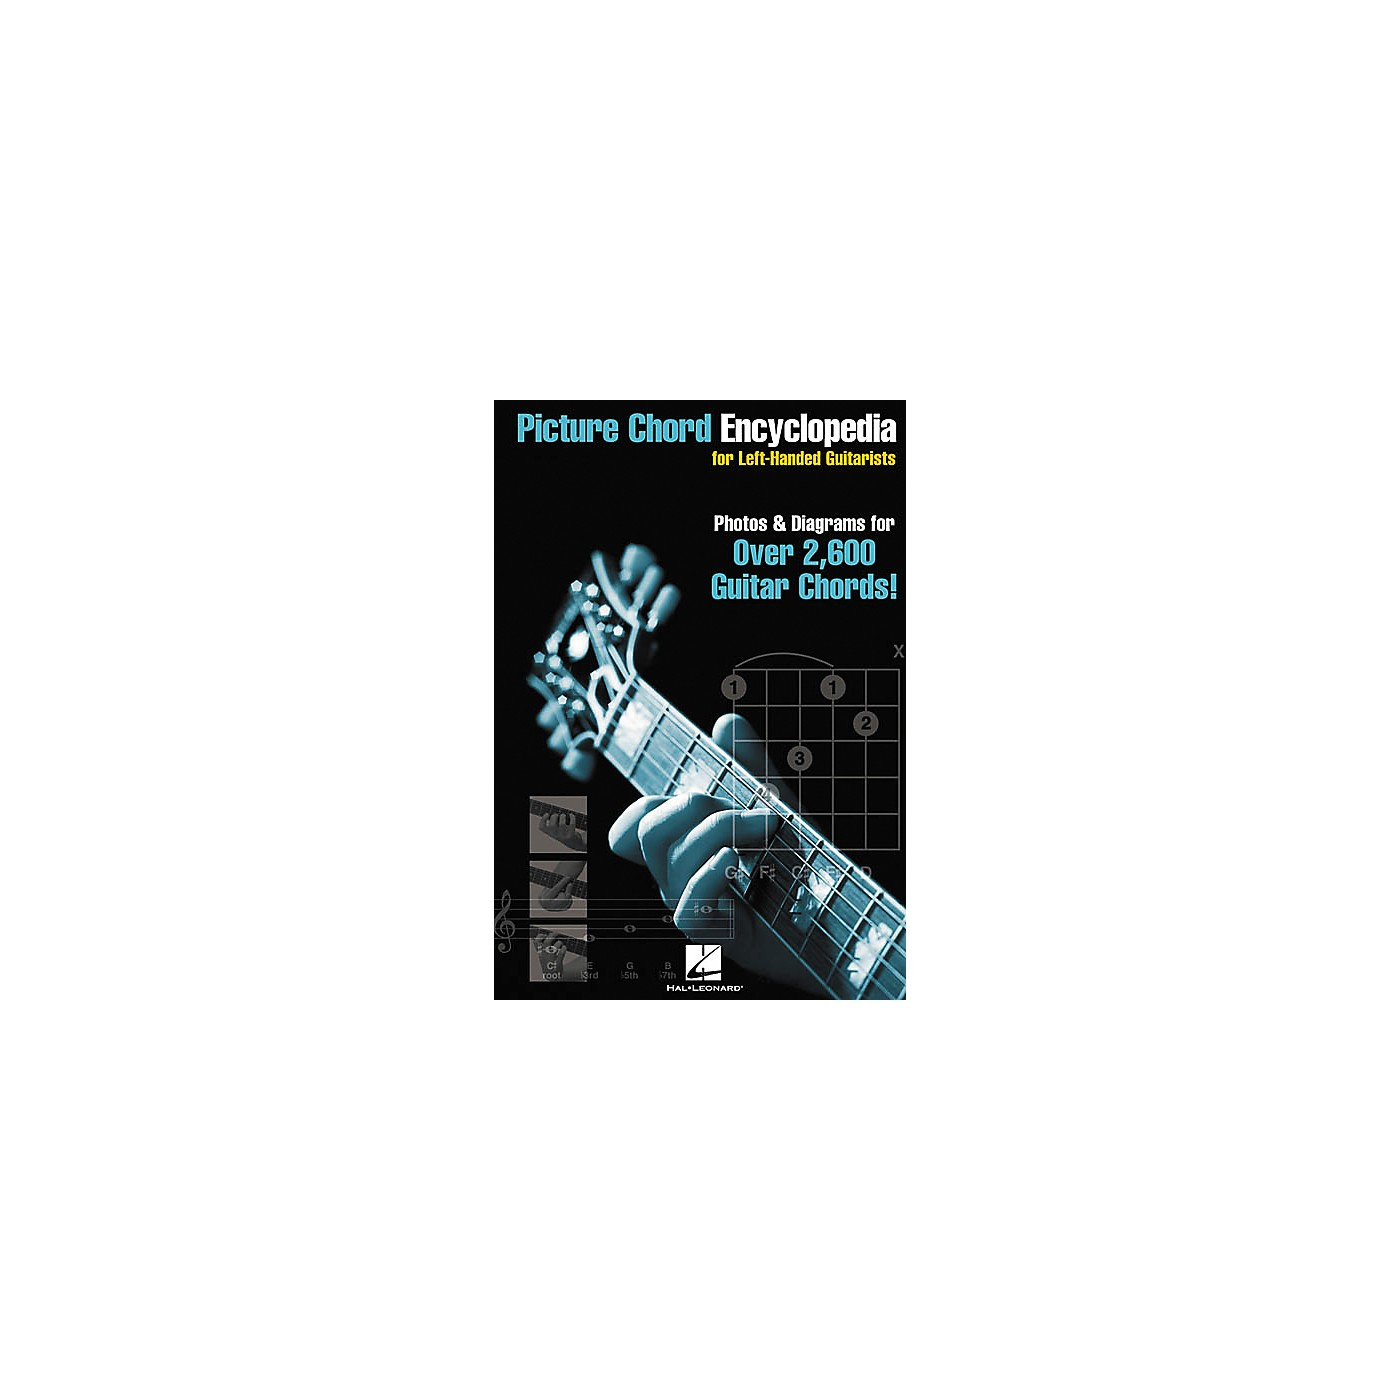 Hal Leonard Picture Chord Encyclopedia for Left-Handed Guitarists Book thumbnail